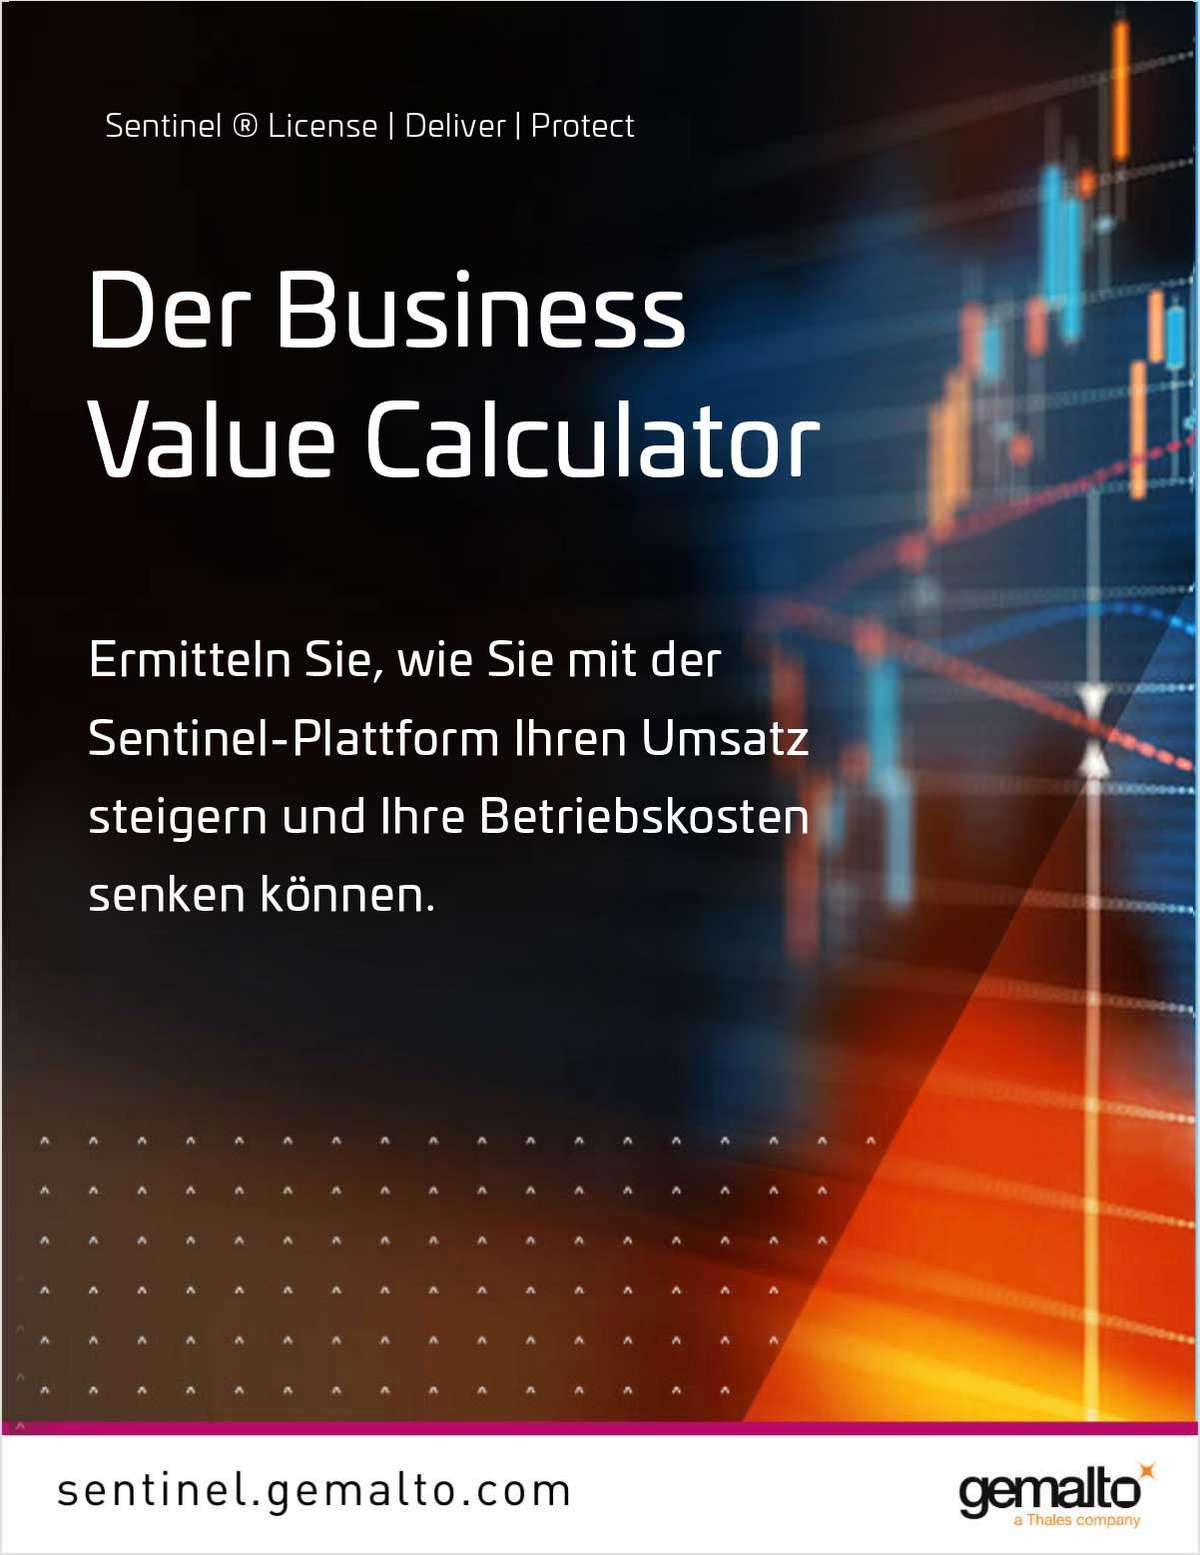 Der Sentinel Software Business Value Calculator